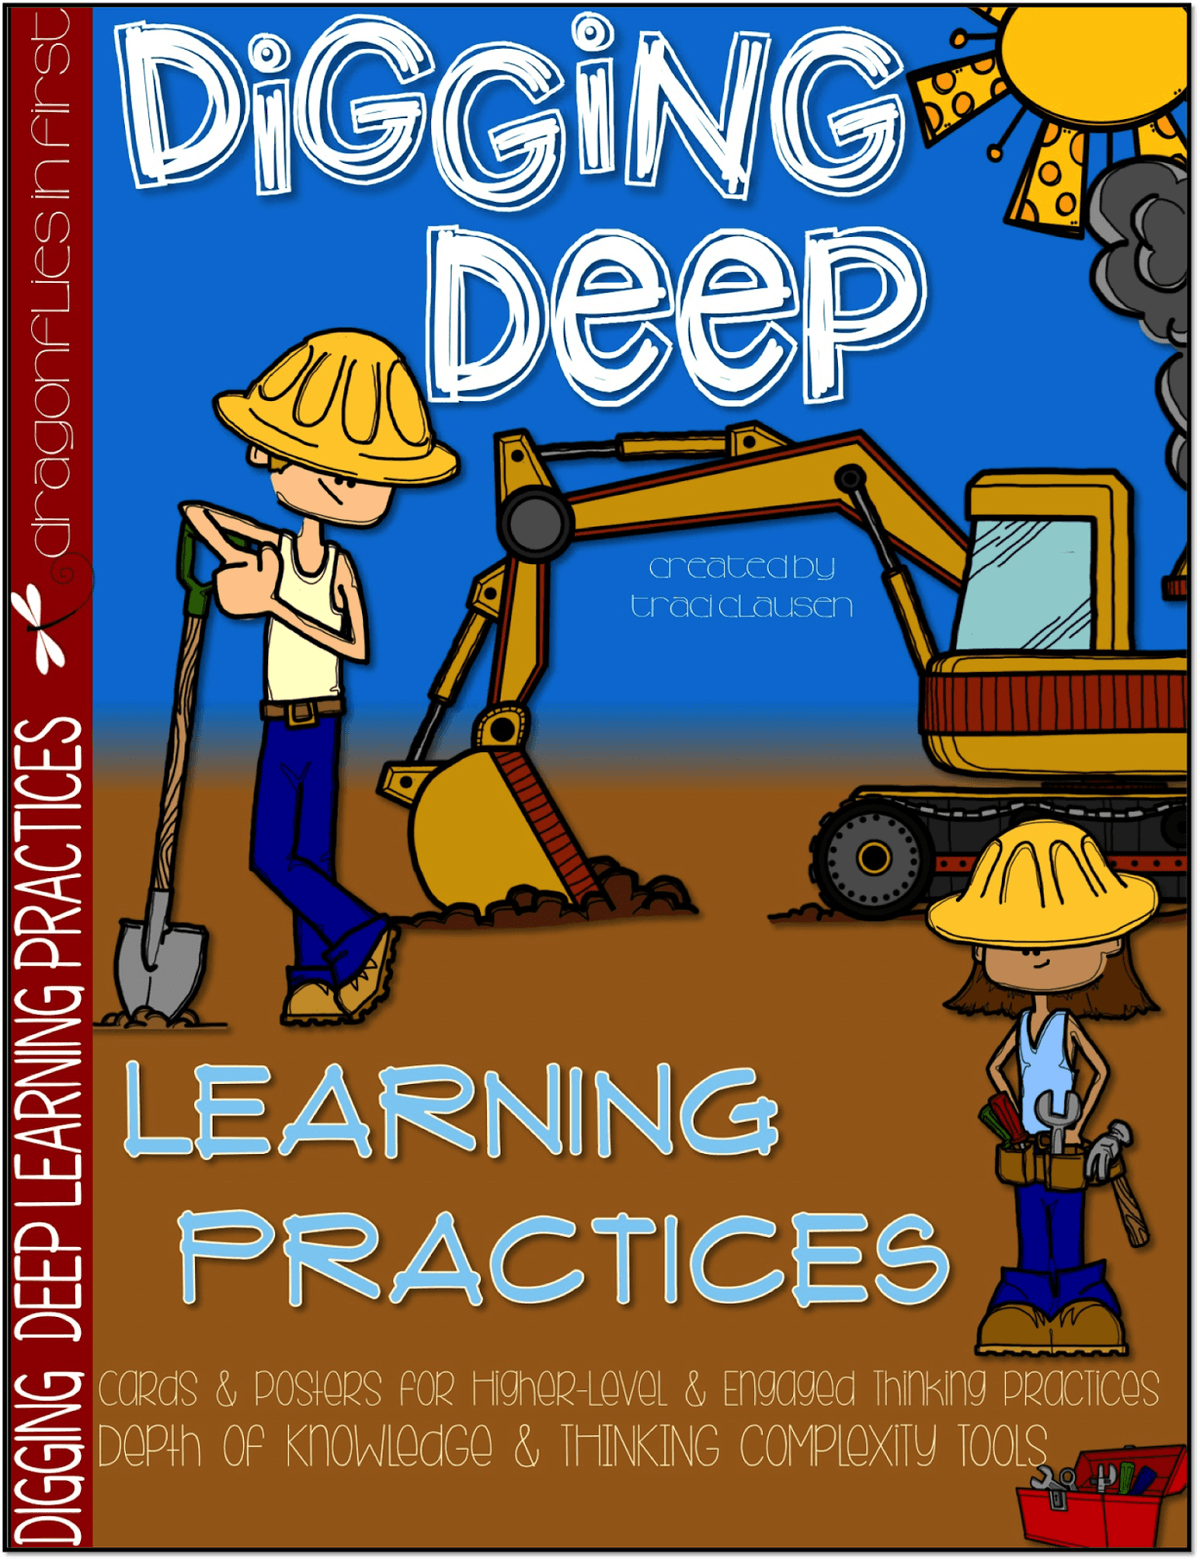 Engaging Learning Practices And Higher Level Thinking